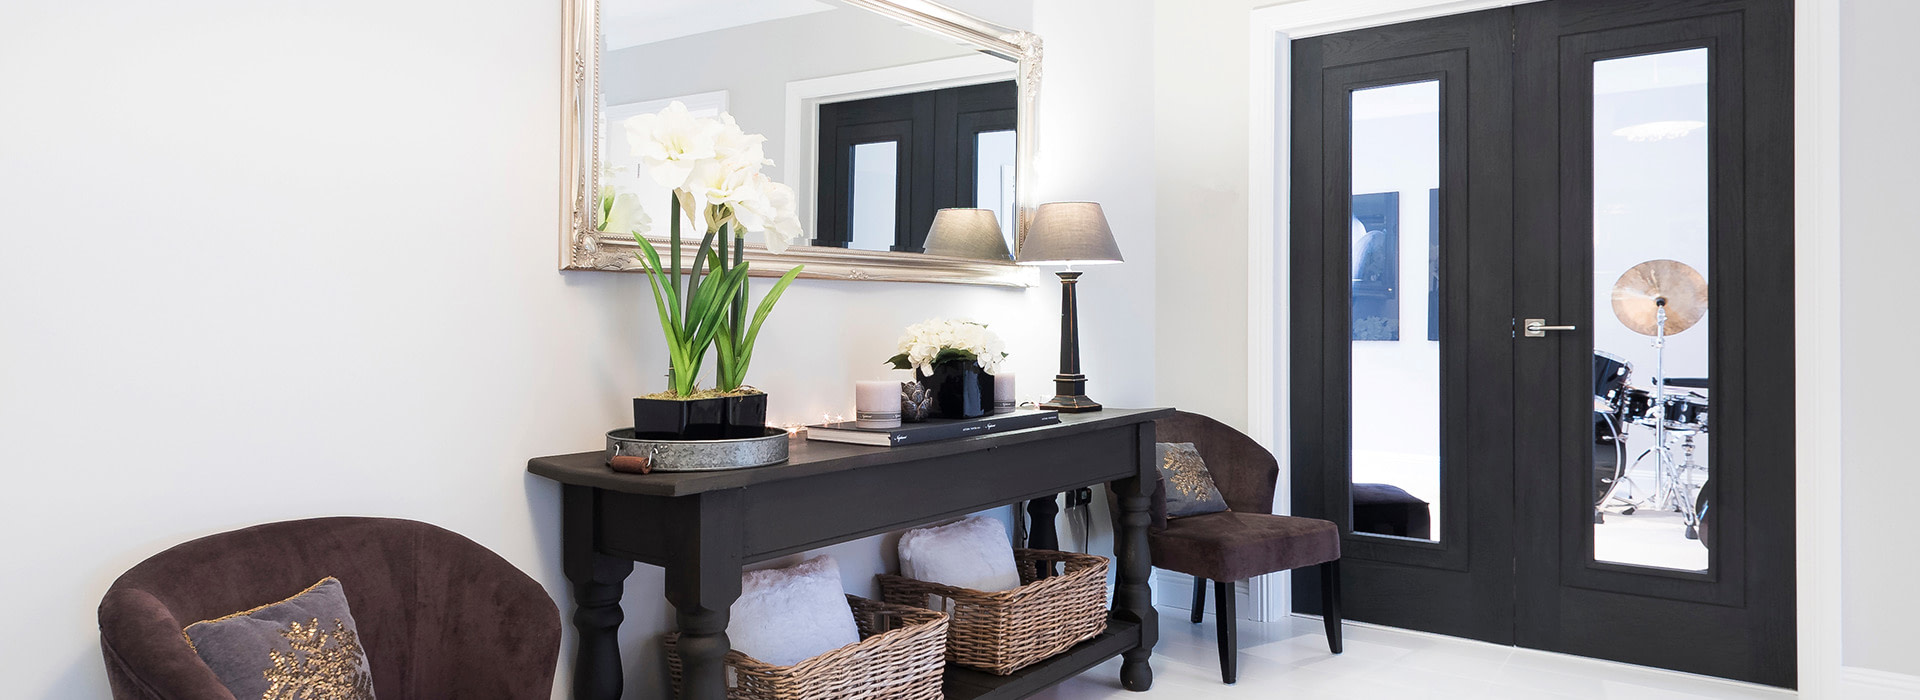 Monochrome hallway with side table